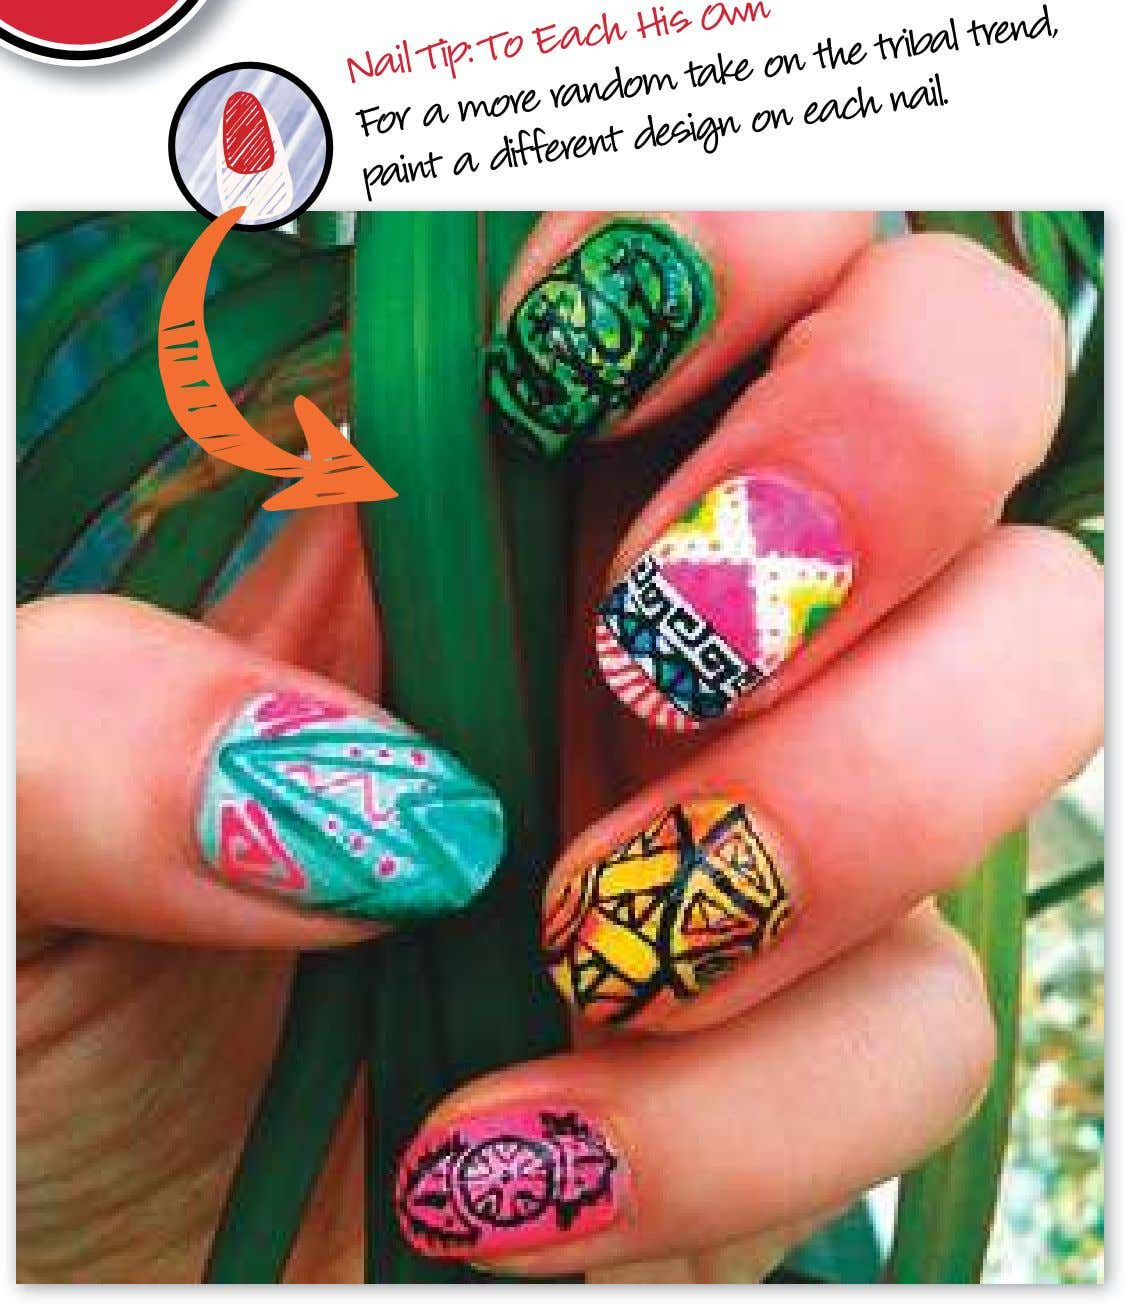 Nail To Each Own For random His take the tribal nail. trend, paint a Tip: